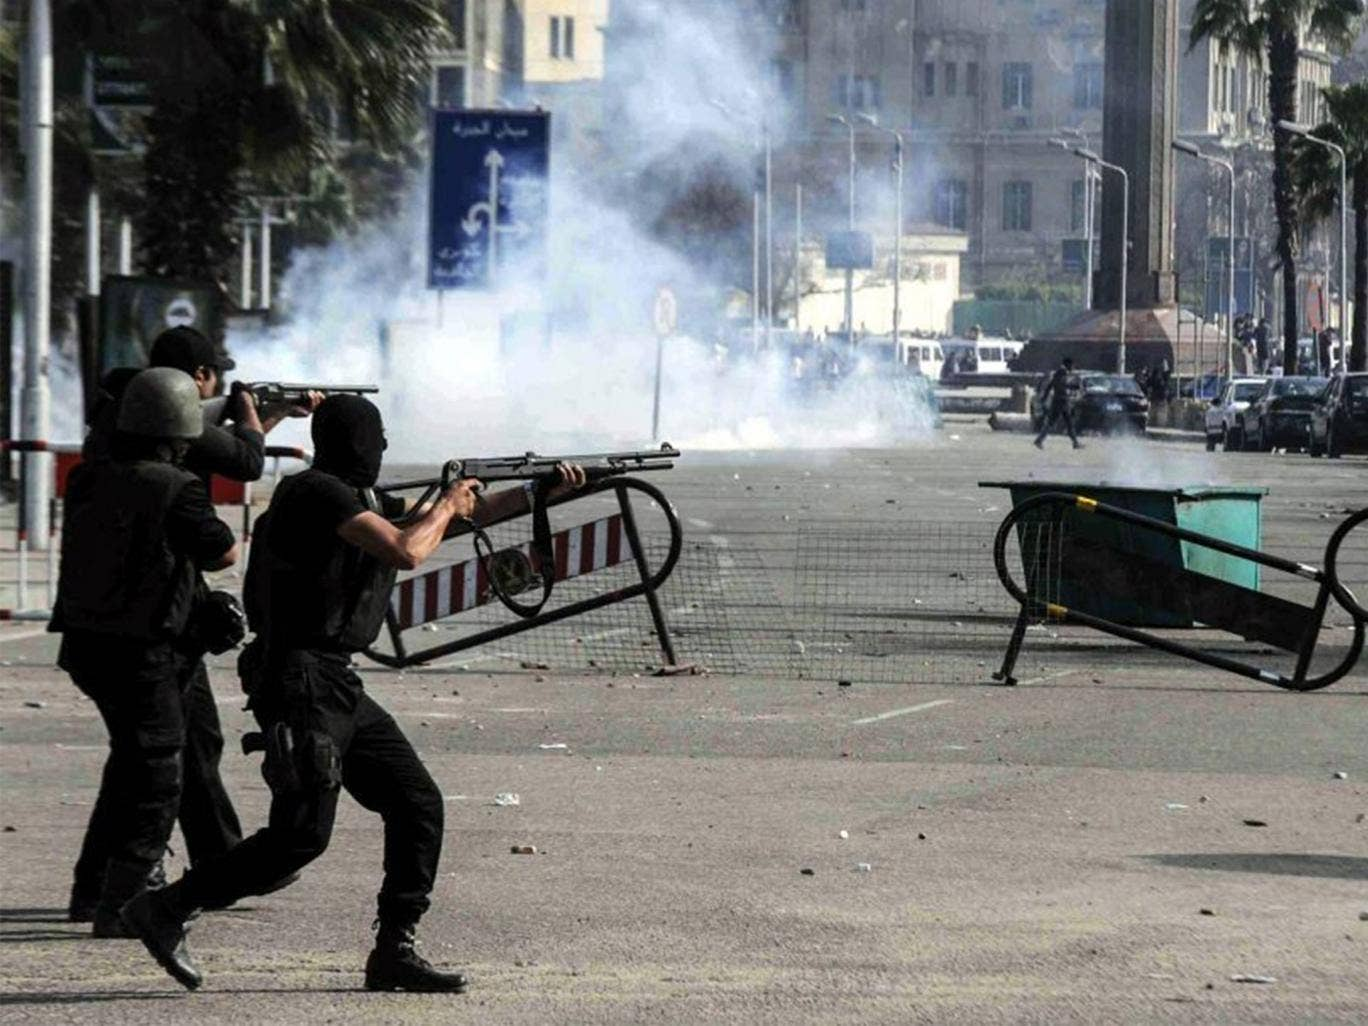 Political turmoil as worsened in Egypt in the past 12 months